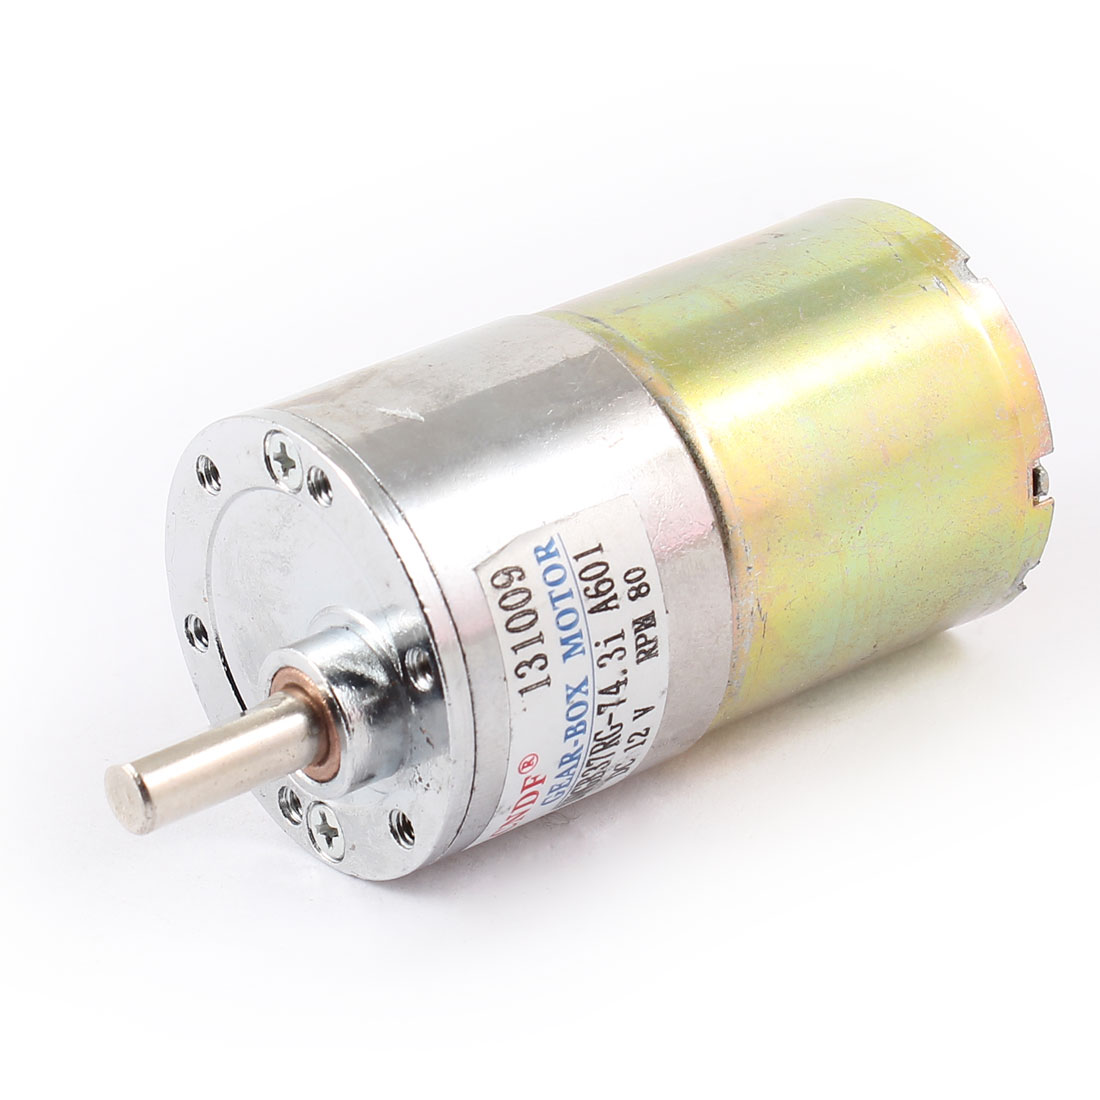 DFGB37RG-74.3i Cylinder Shape DC 12V Speed 80 RPM Geared Box Motor